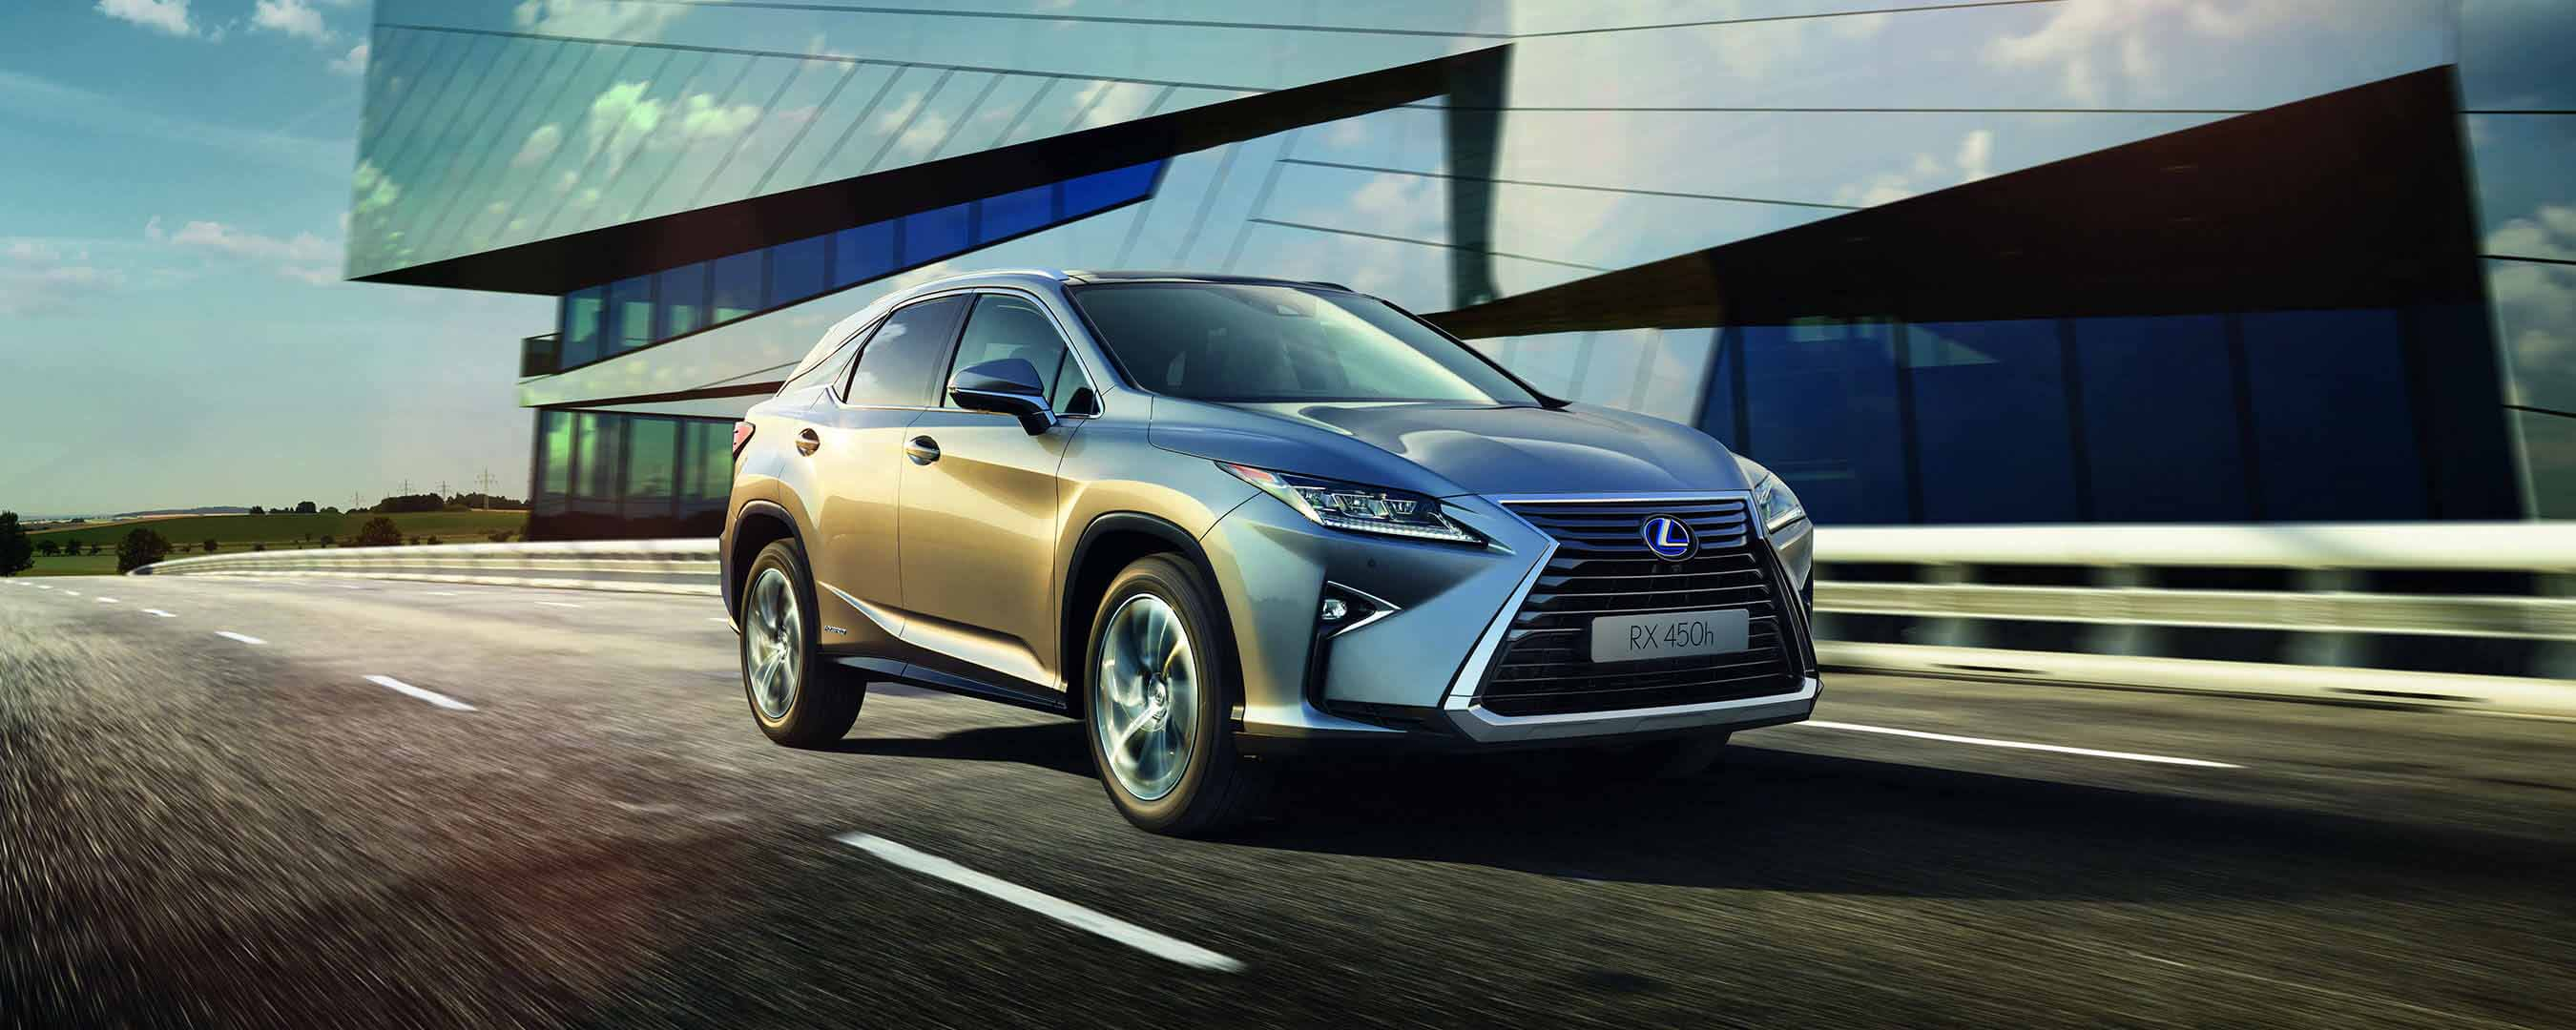 2017 lexus rx 450h experience hero exterior front